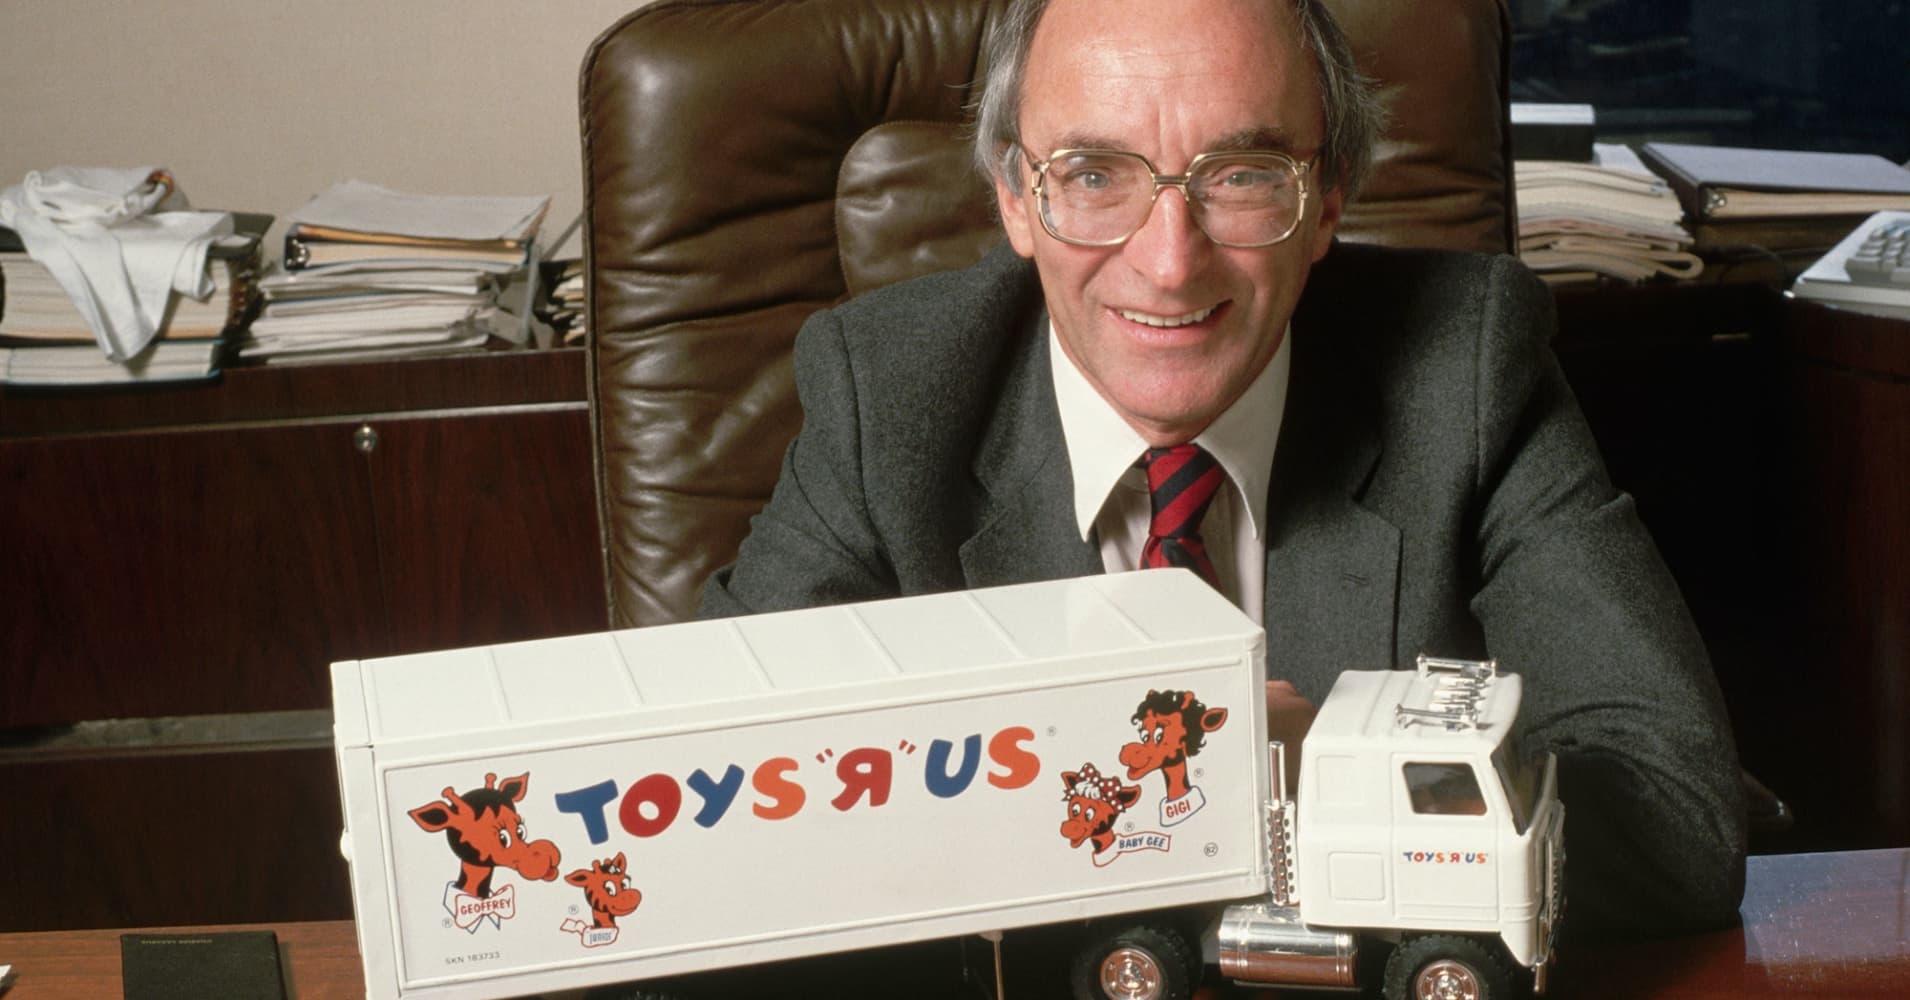 Toys R Us built a kingdom and the world's biggest toy store. Then, they lost it.